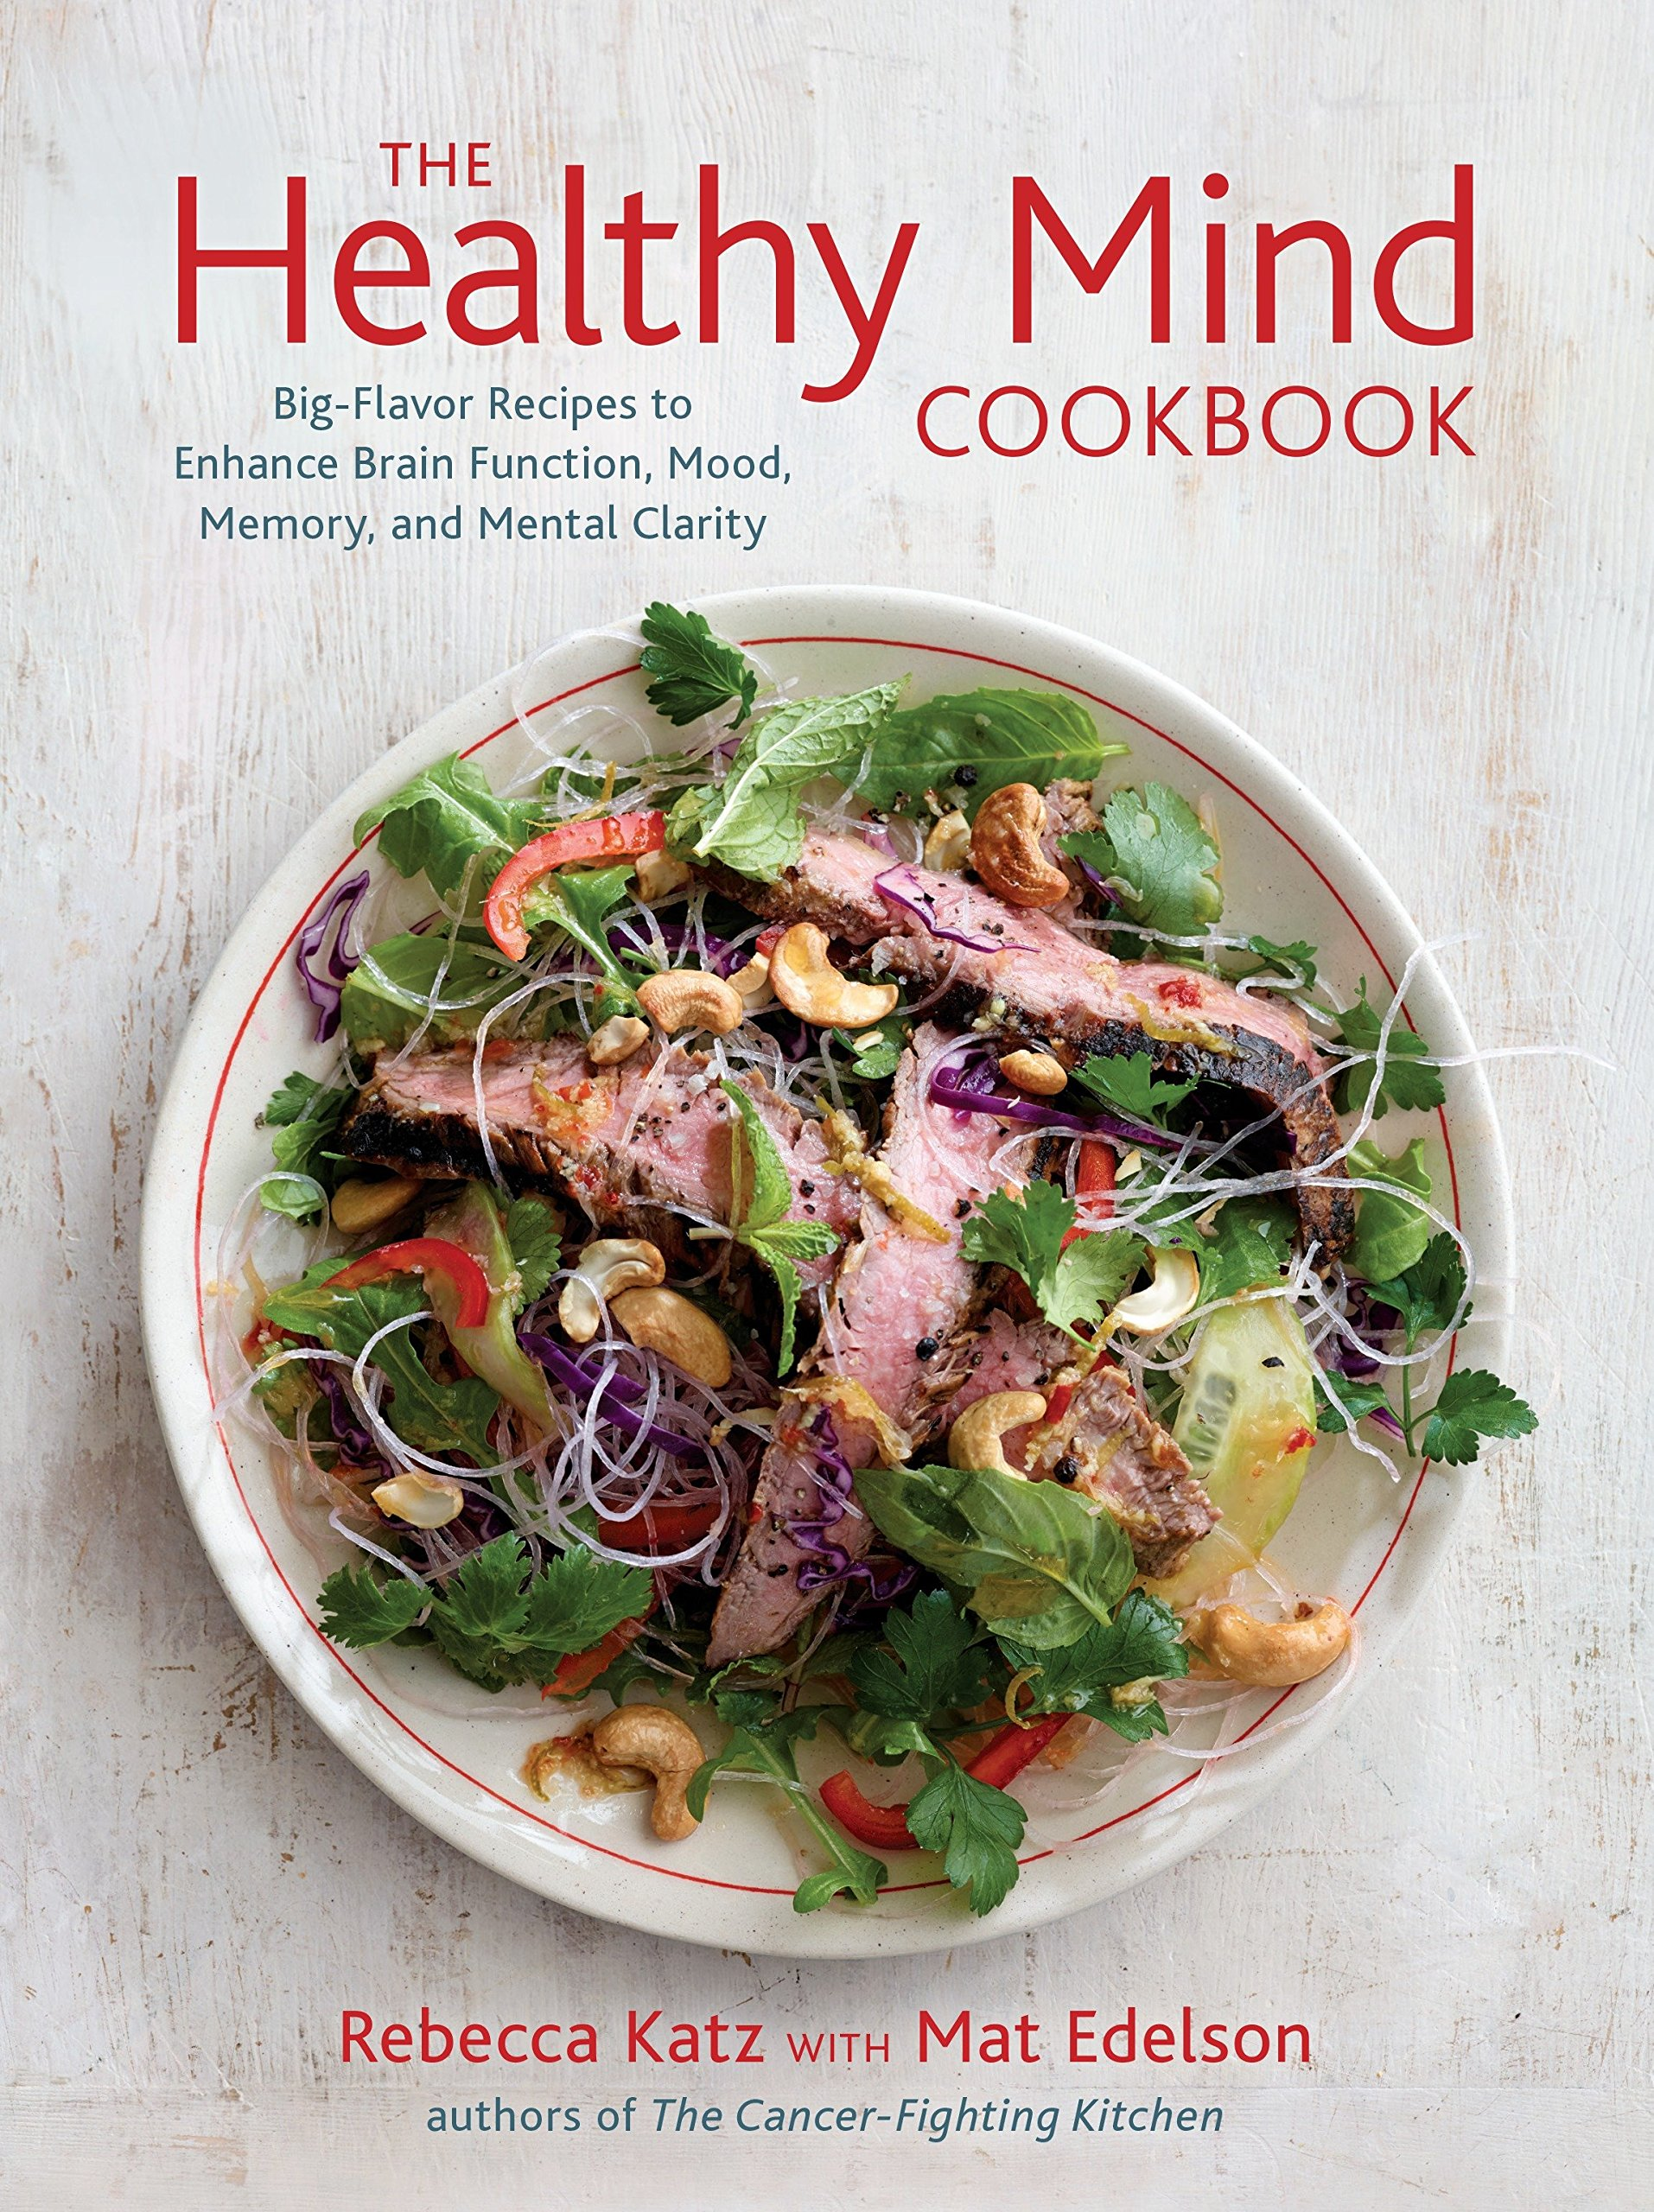 The Healthy Mind Cookbook: Big-Flavor Recipes to Enhance Brain Function, Mood, Memory, and Mental Clarity by Ten Speed Press